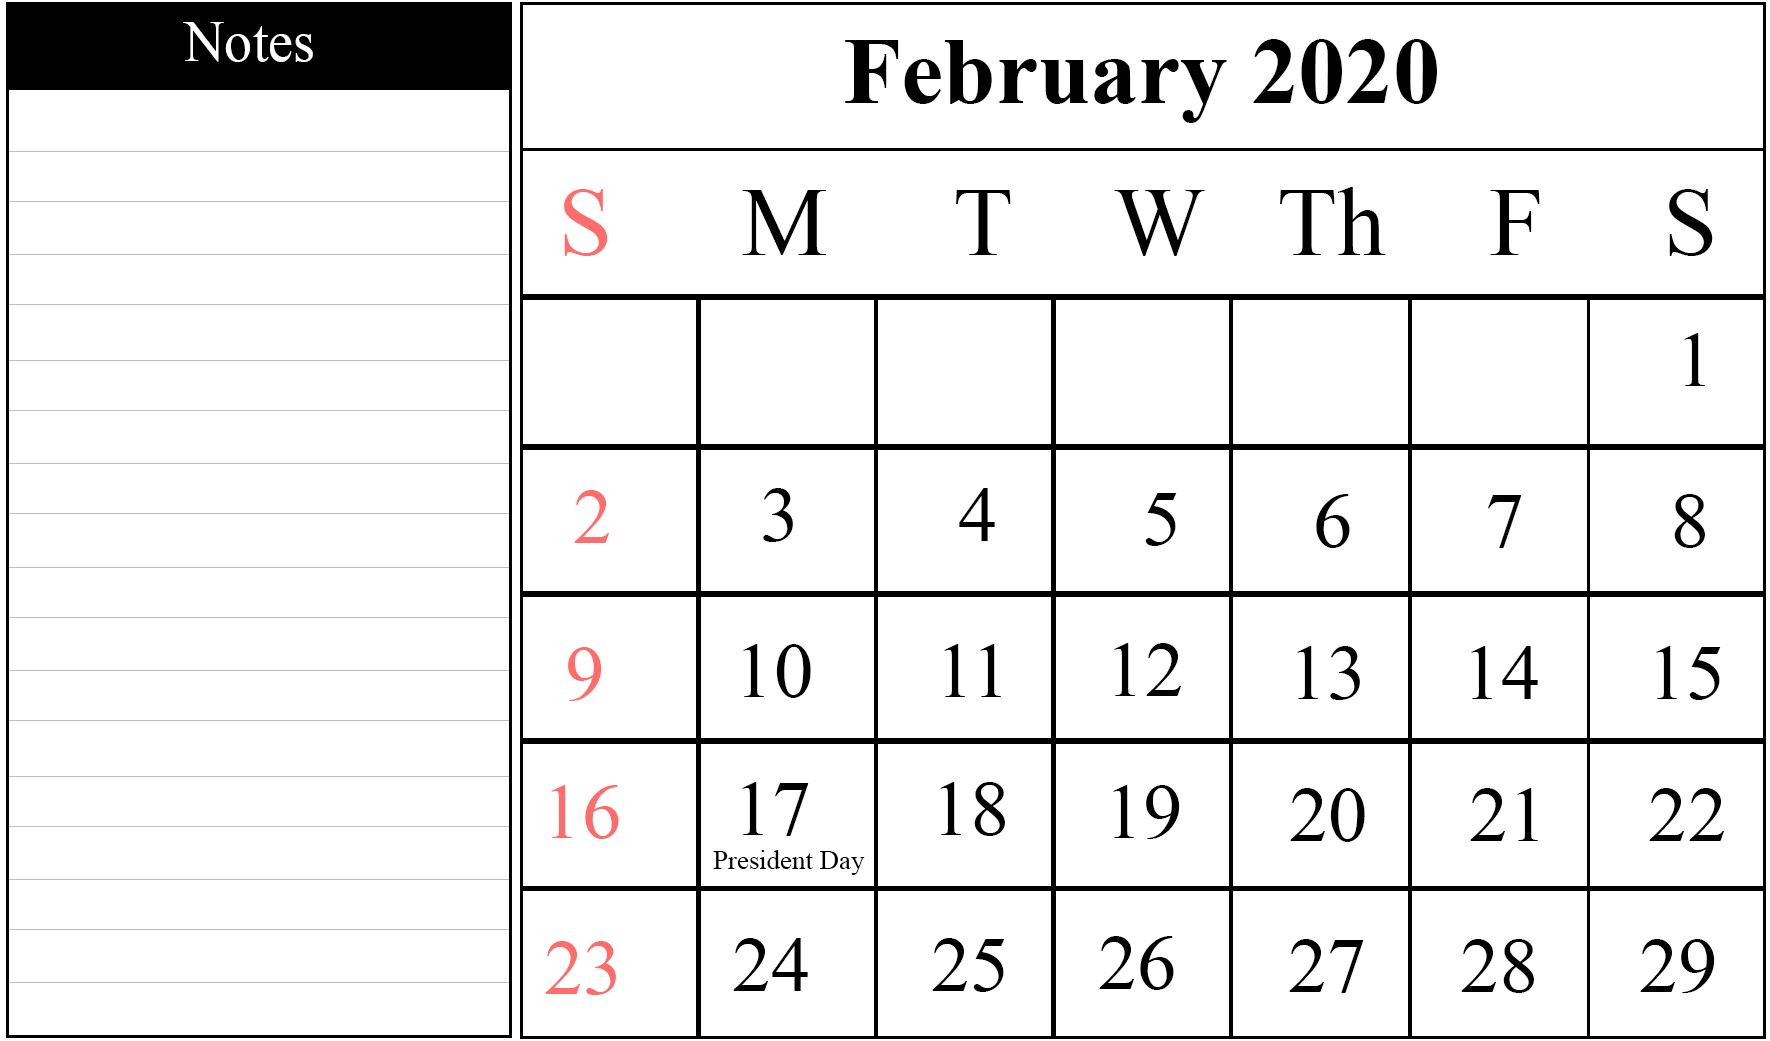 Editable February 2020 Calendar with Notes